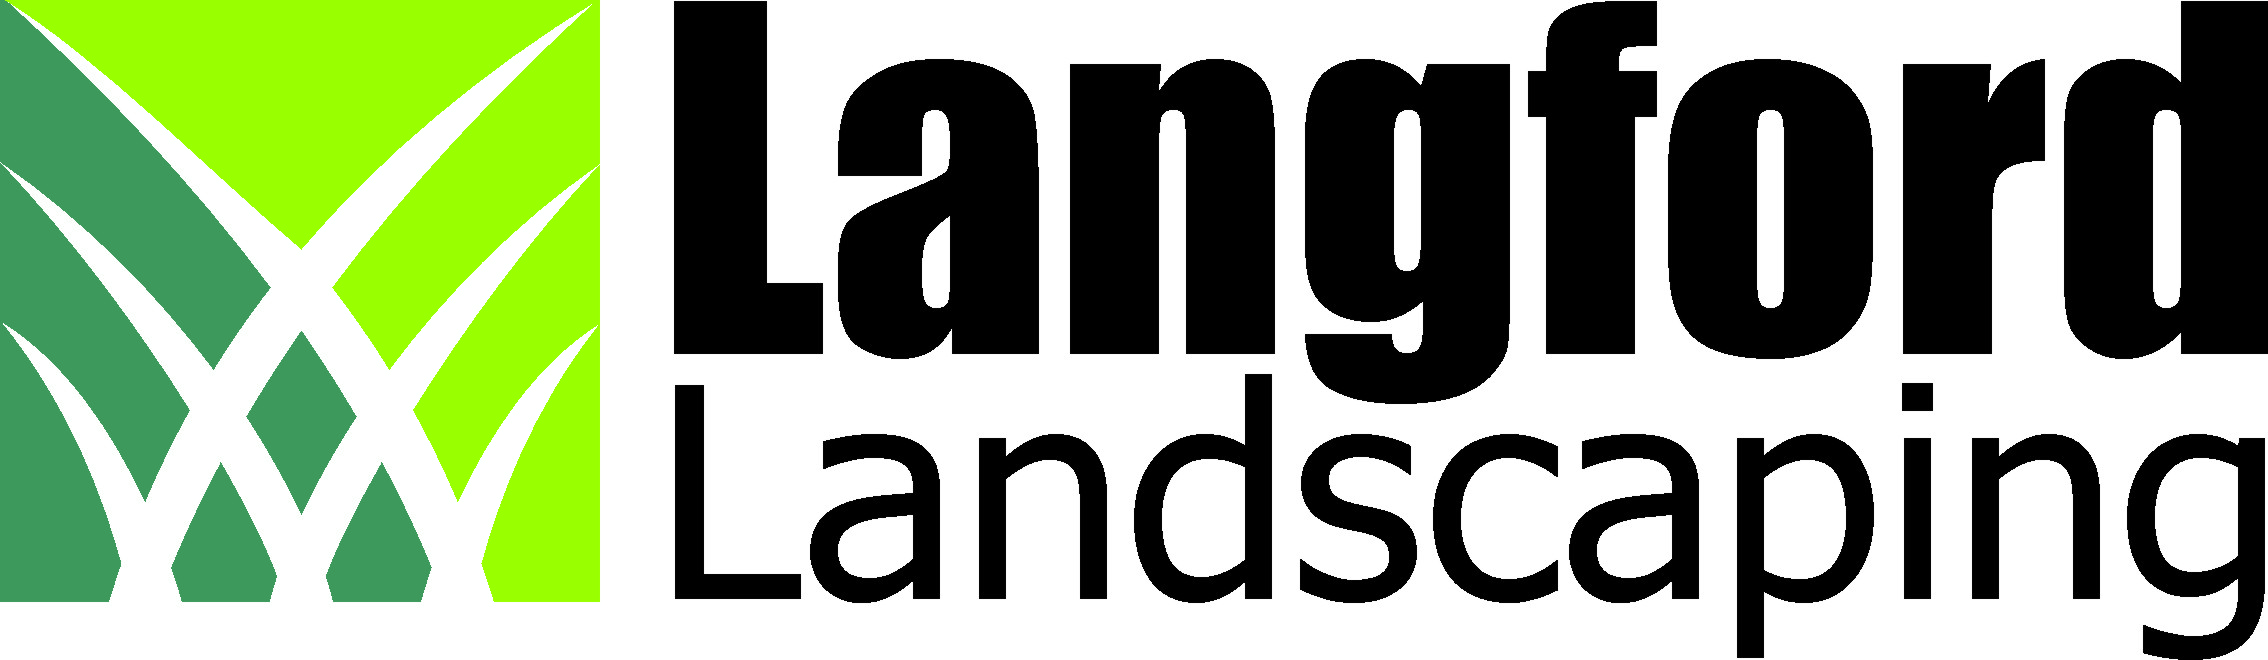 Langford Landscaping company logo